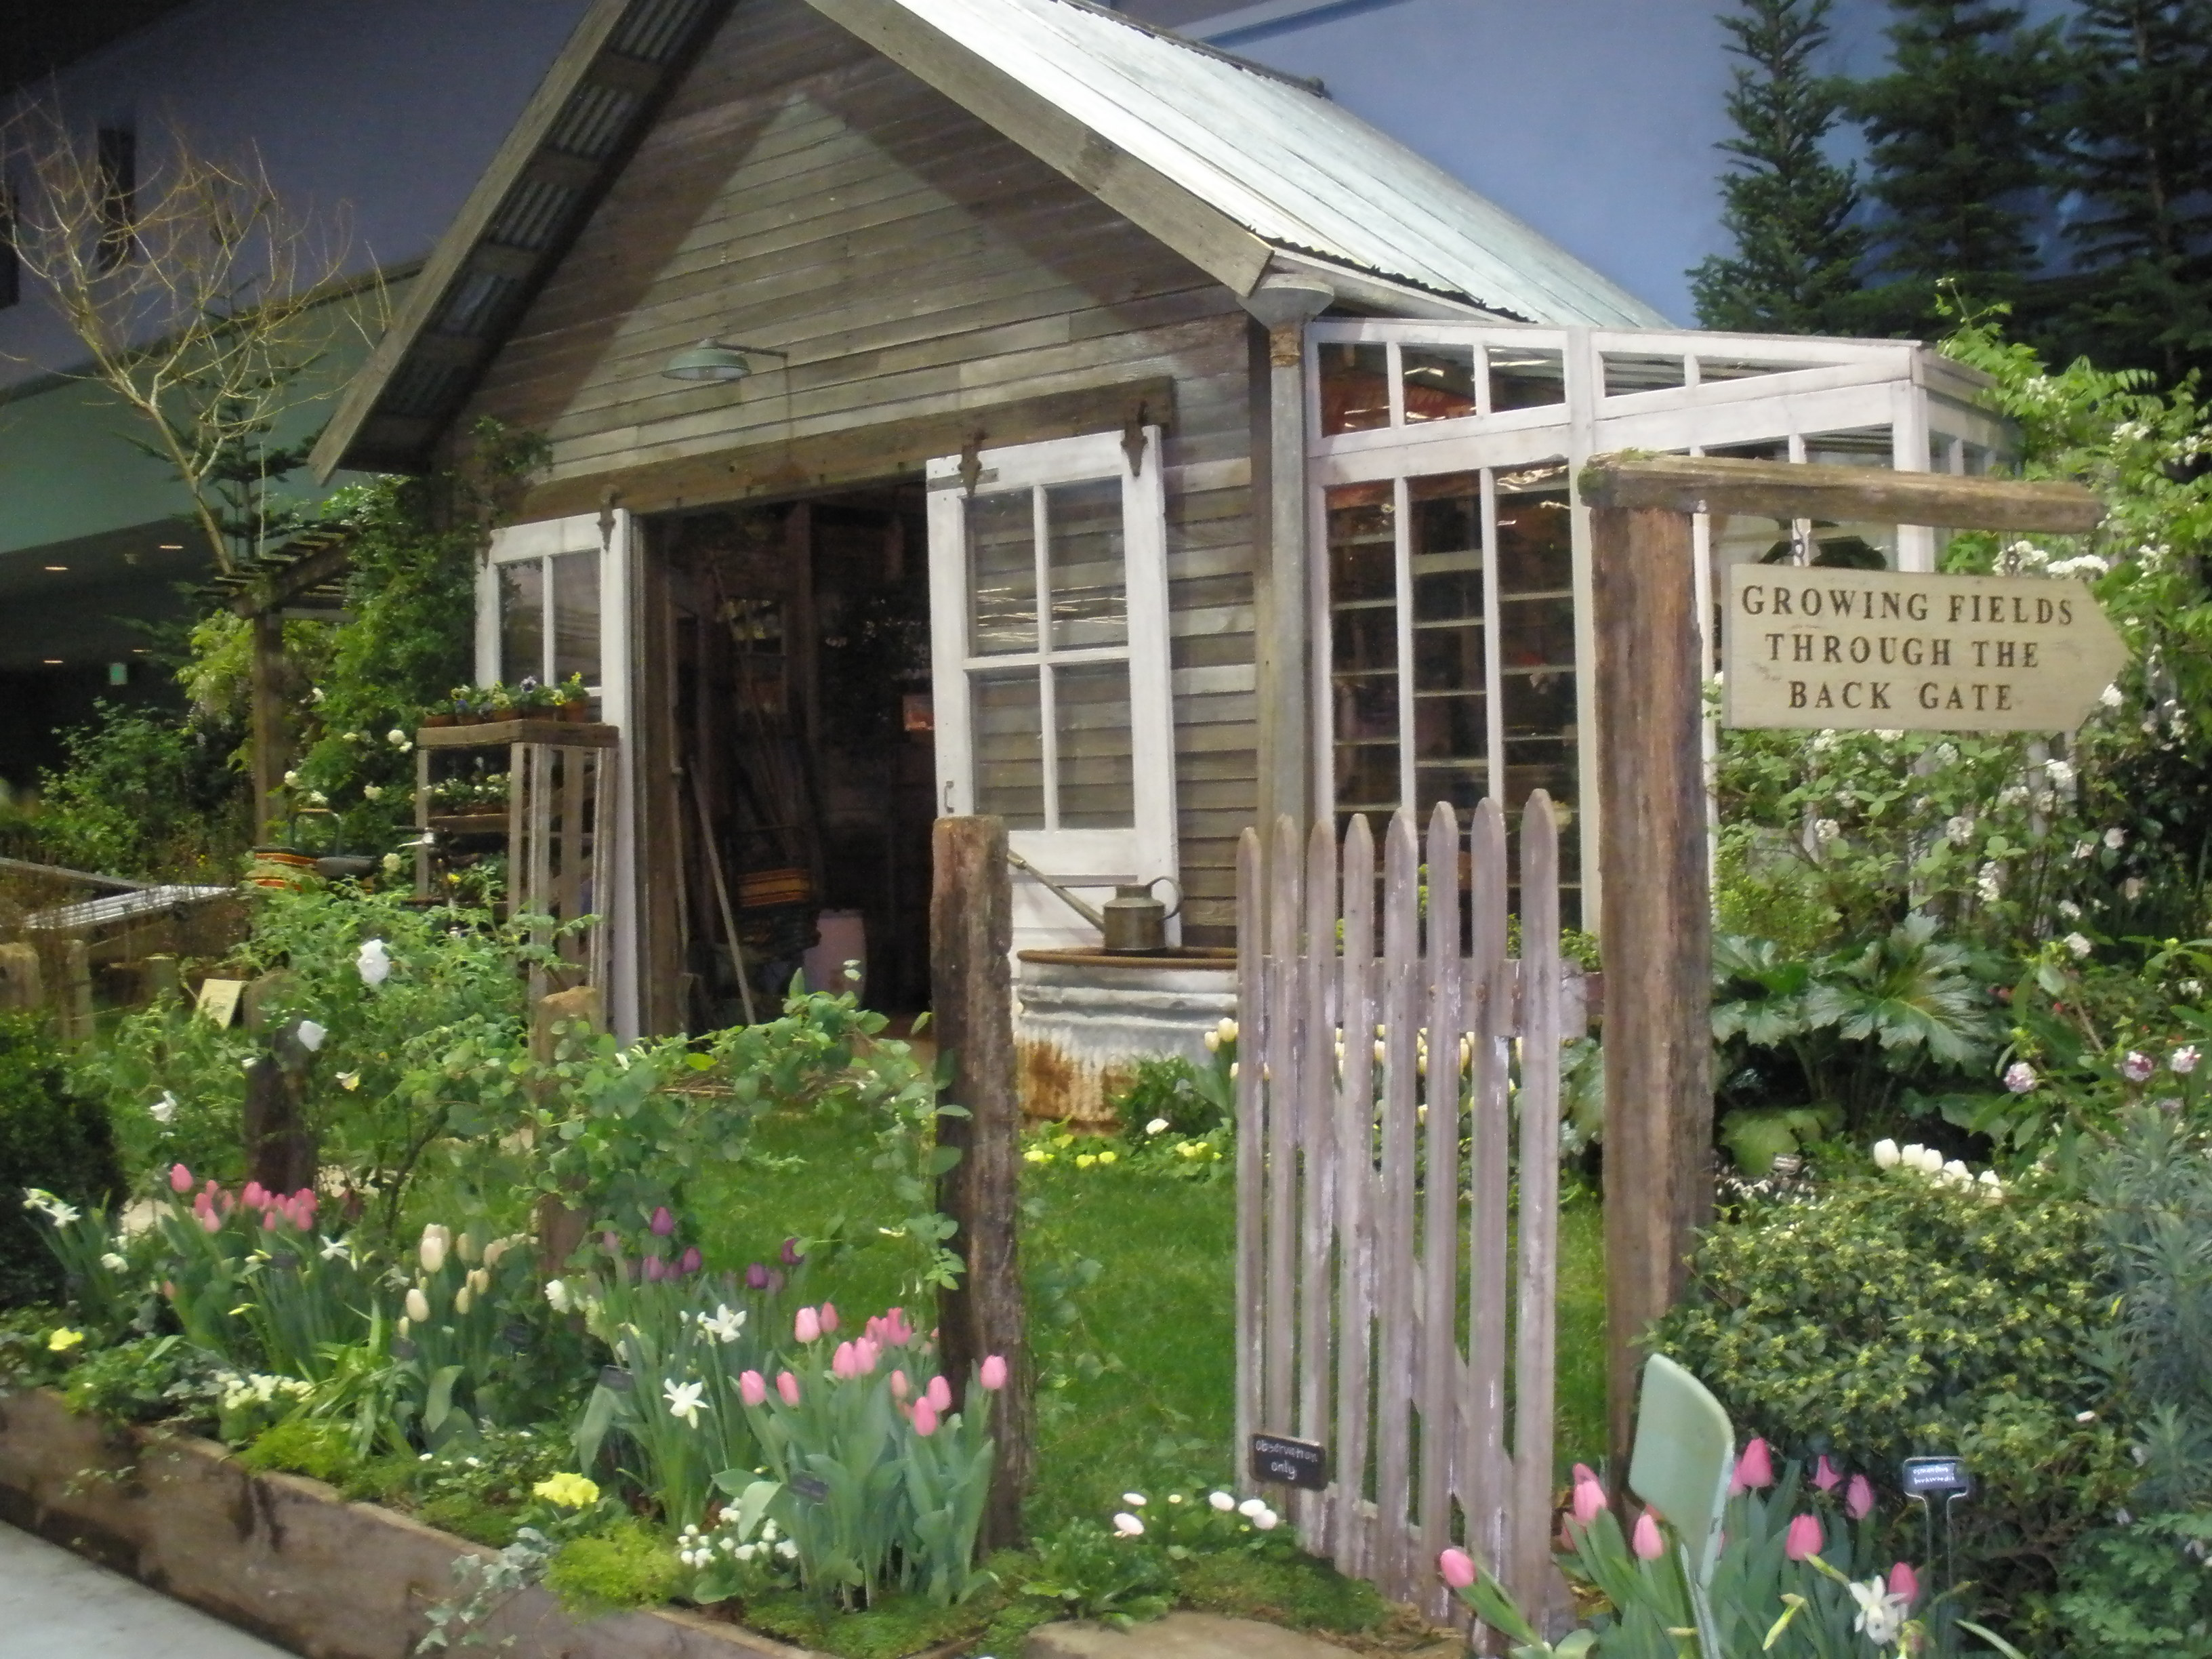 A nw flower garden show thank you figments studio blog - Backyard sheds plans ideas ...